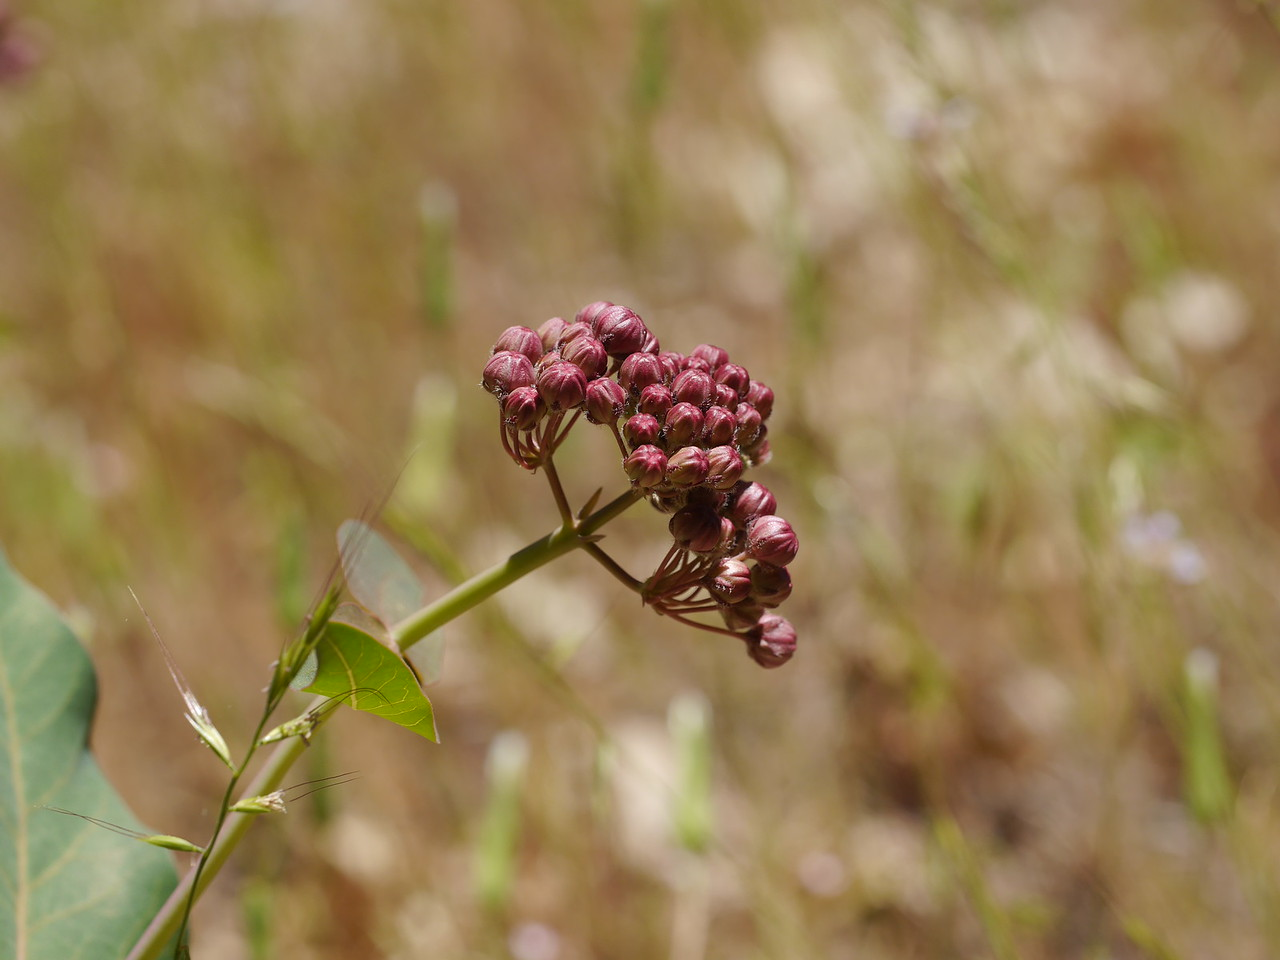 Milkweed buds.  Time for us to move on to Butterfly Valley.